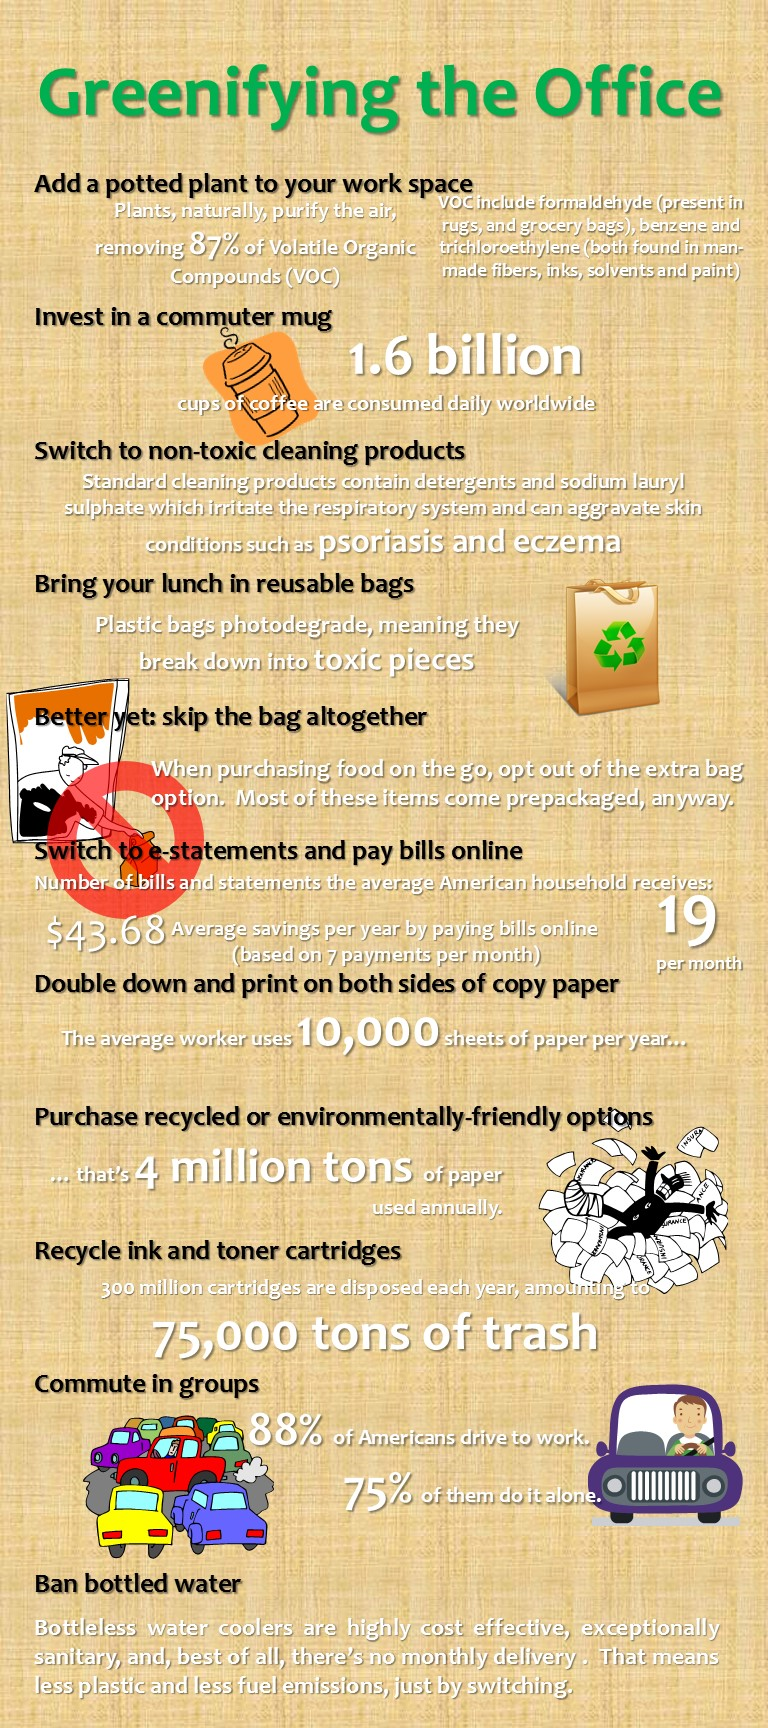 World Environment Day, June 6, 2013. Simple ways to make your office greener.